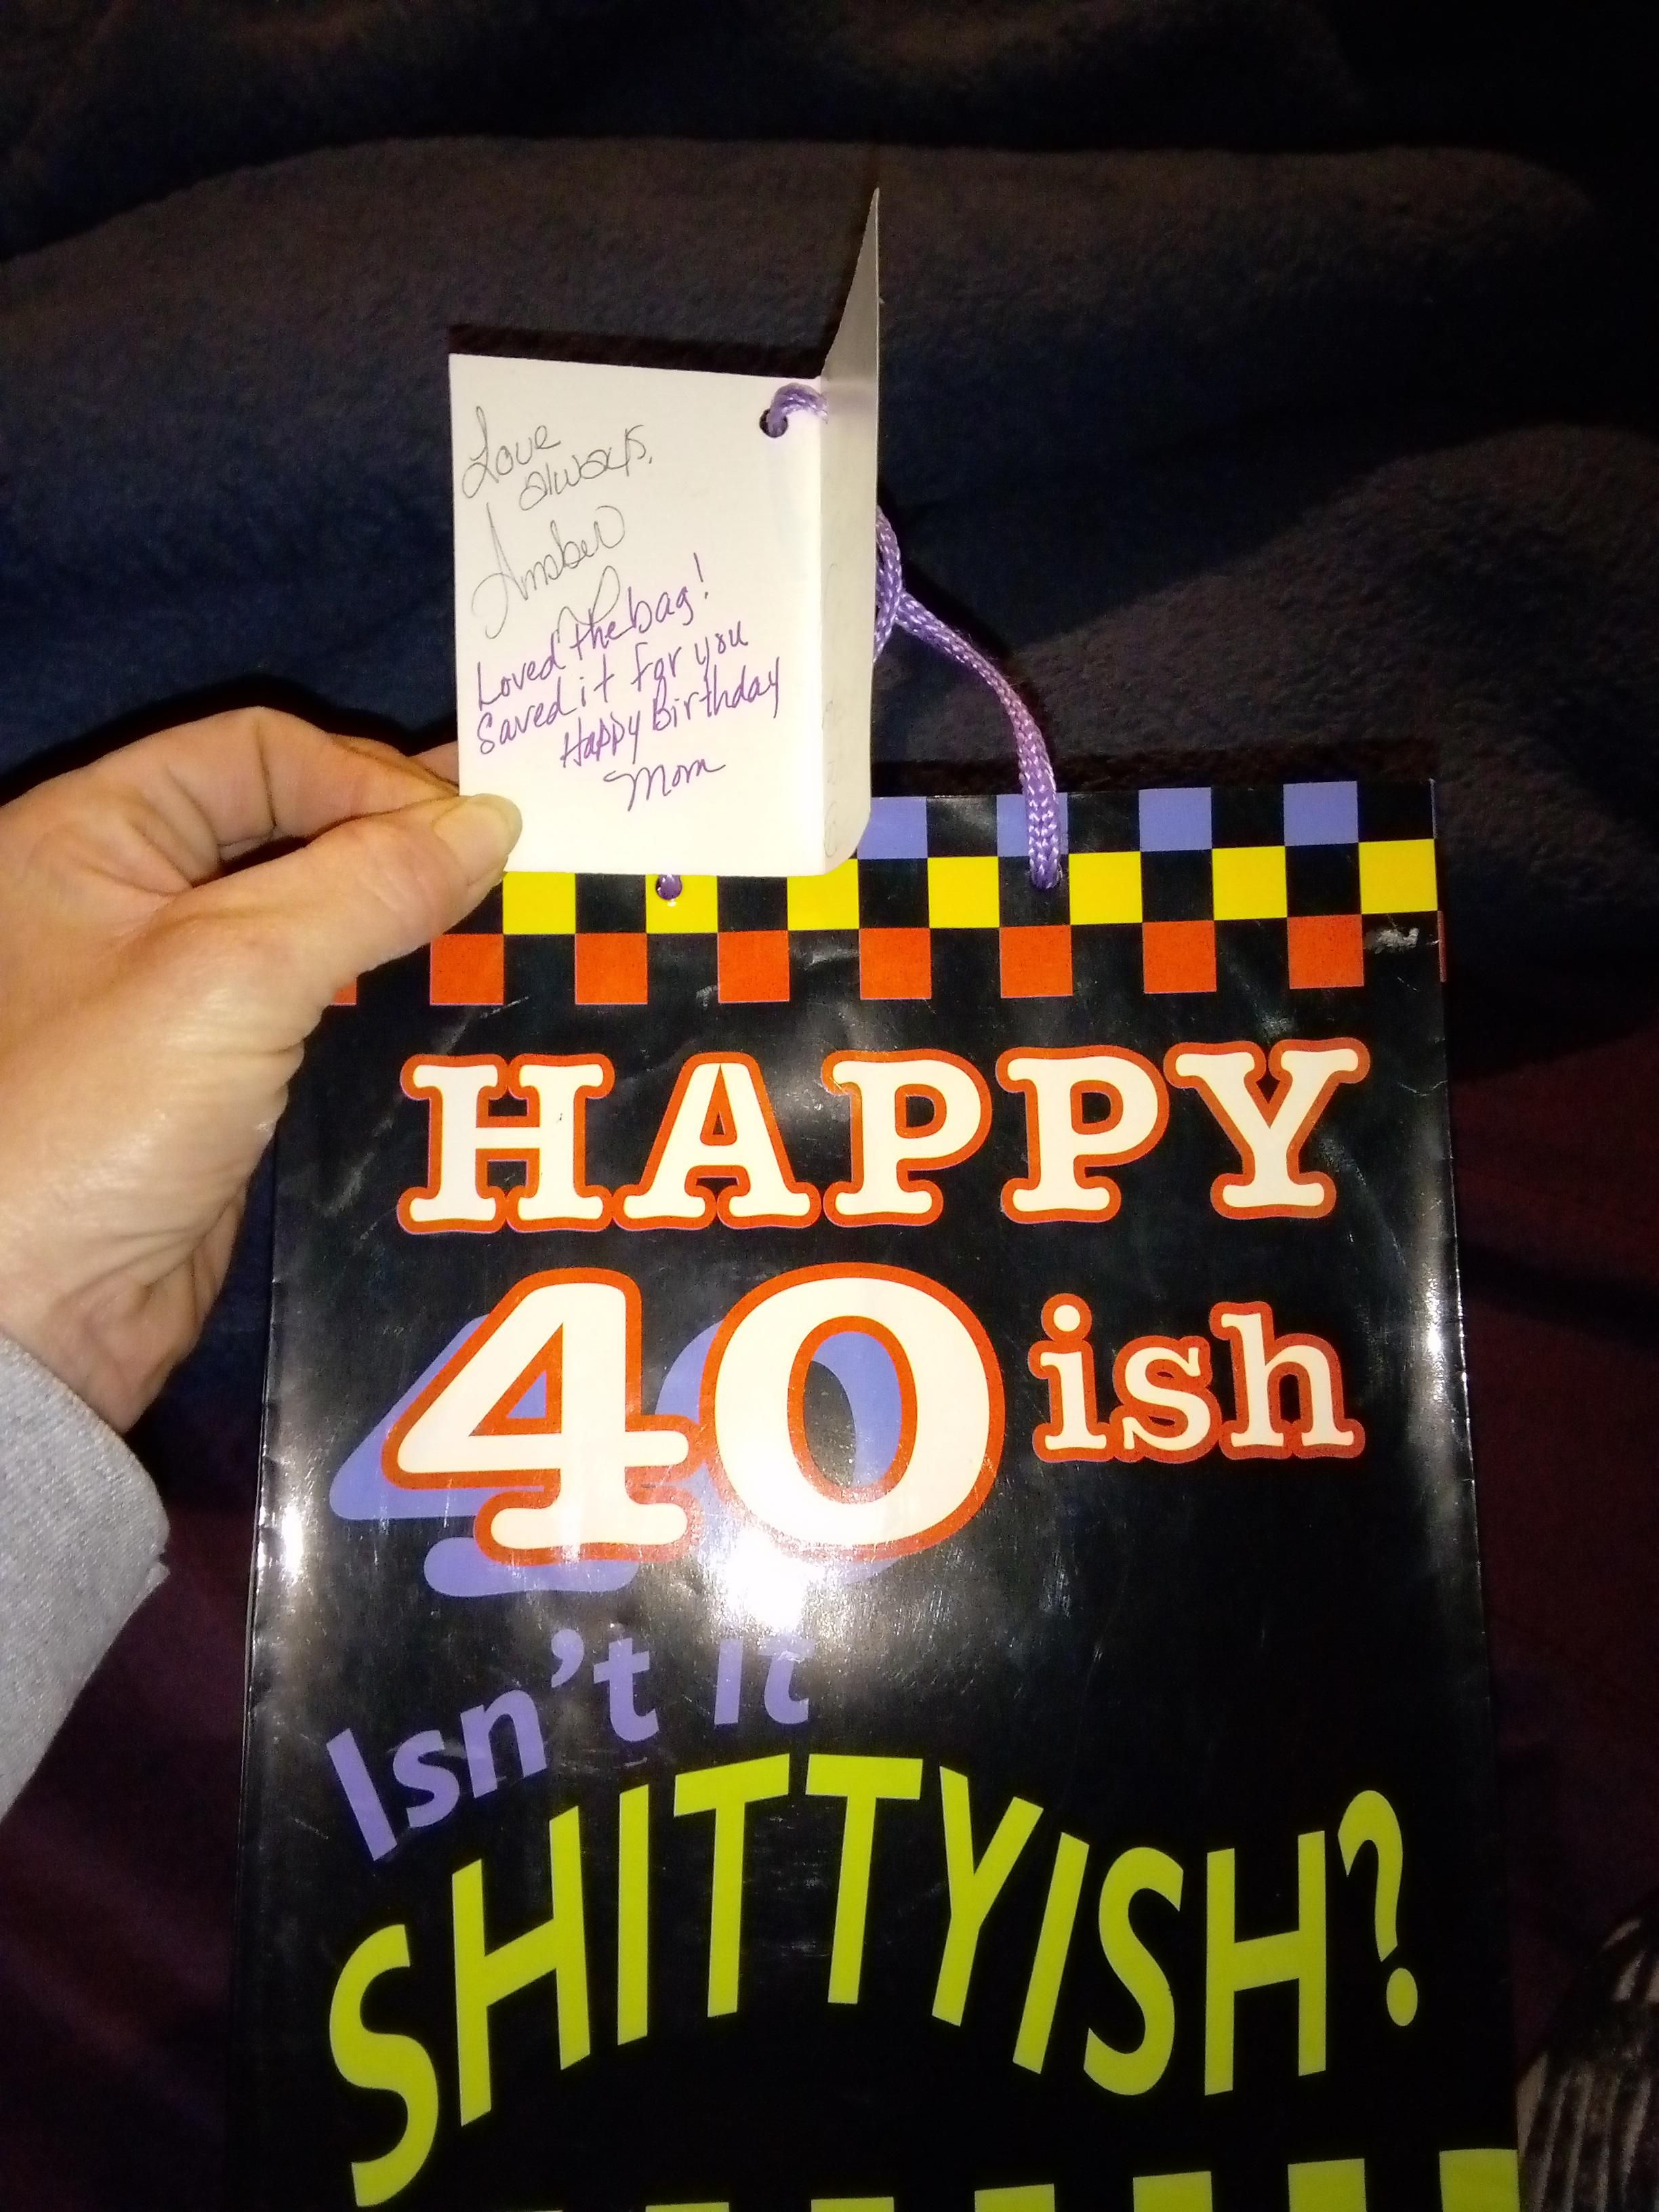 I gave this bag to my mom for her 40th birthday, she saved it 24 years to give me on my 40th.